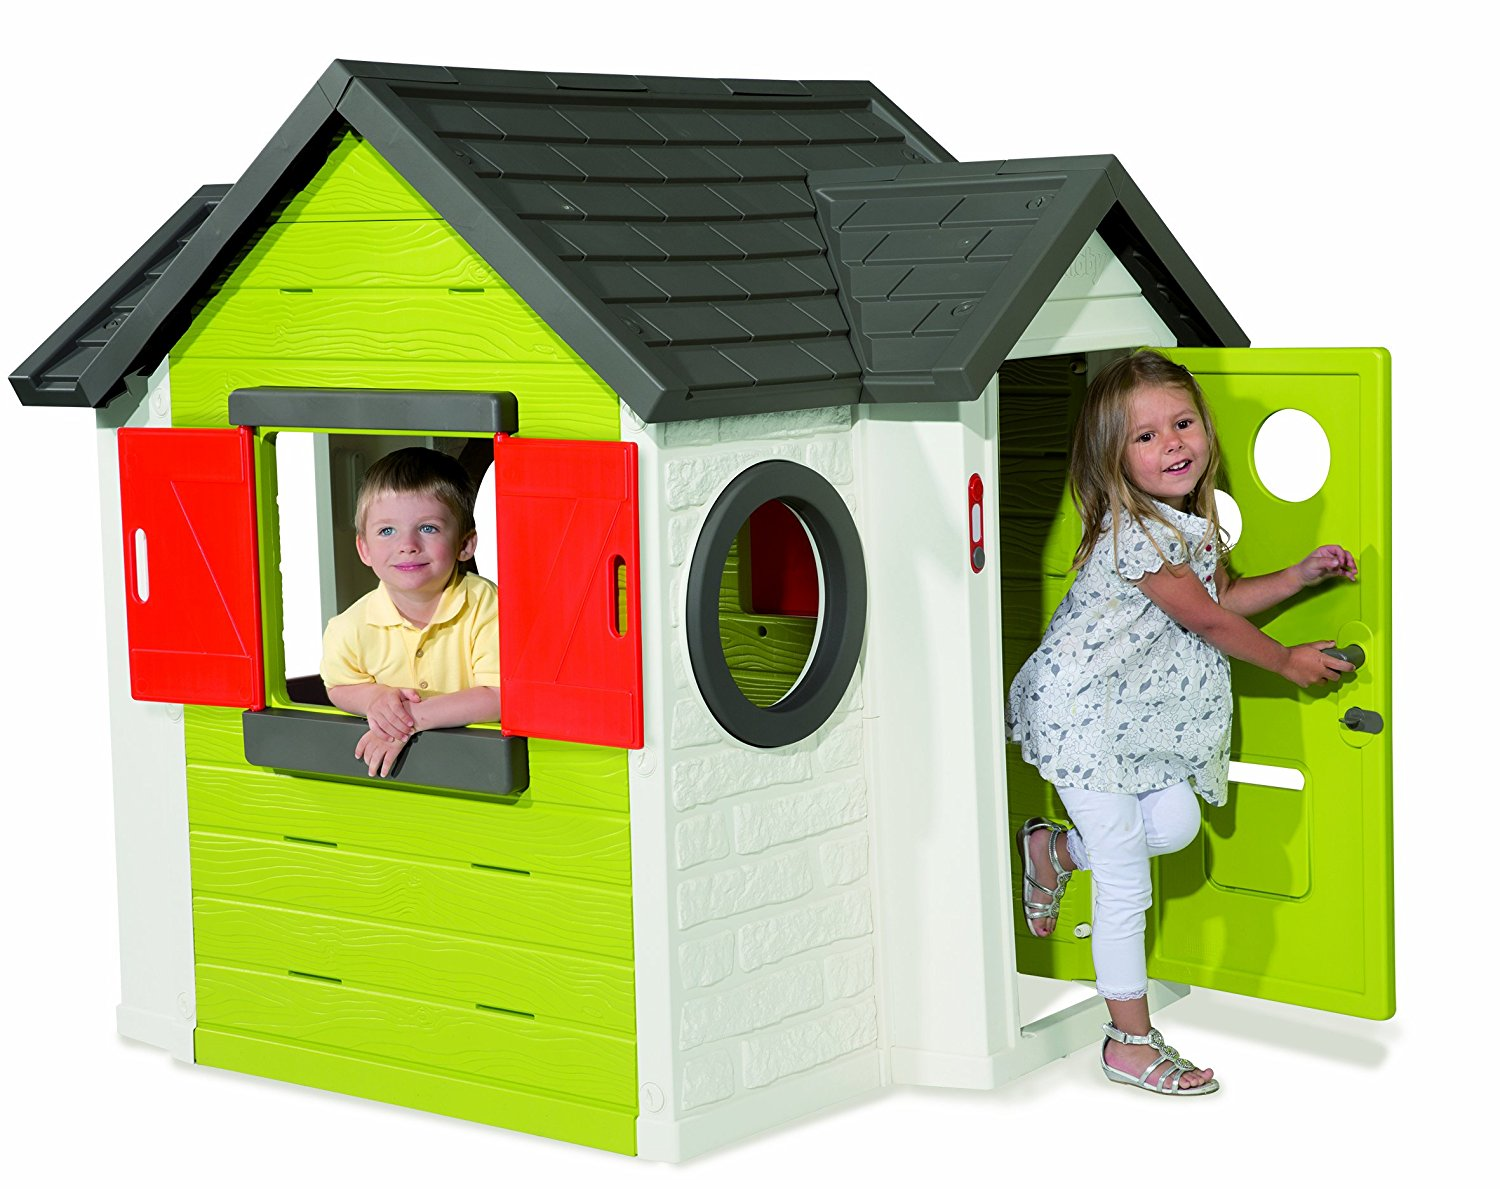 Children's playhouse Children's garden house Children's playhouse Children's playhouse Playhouse wood including roofing felt and floor